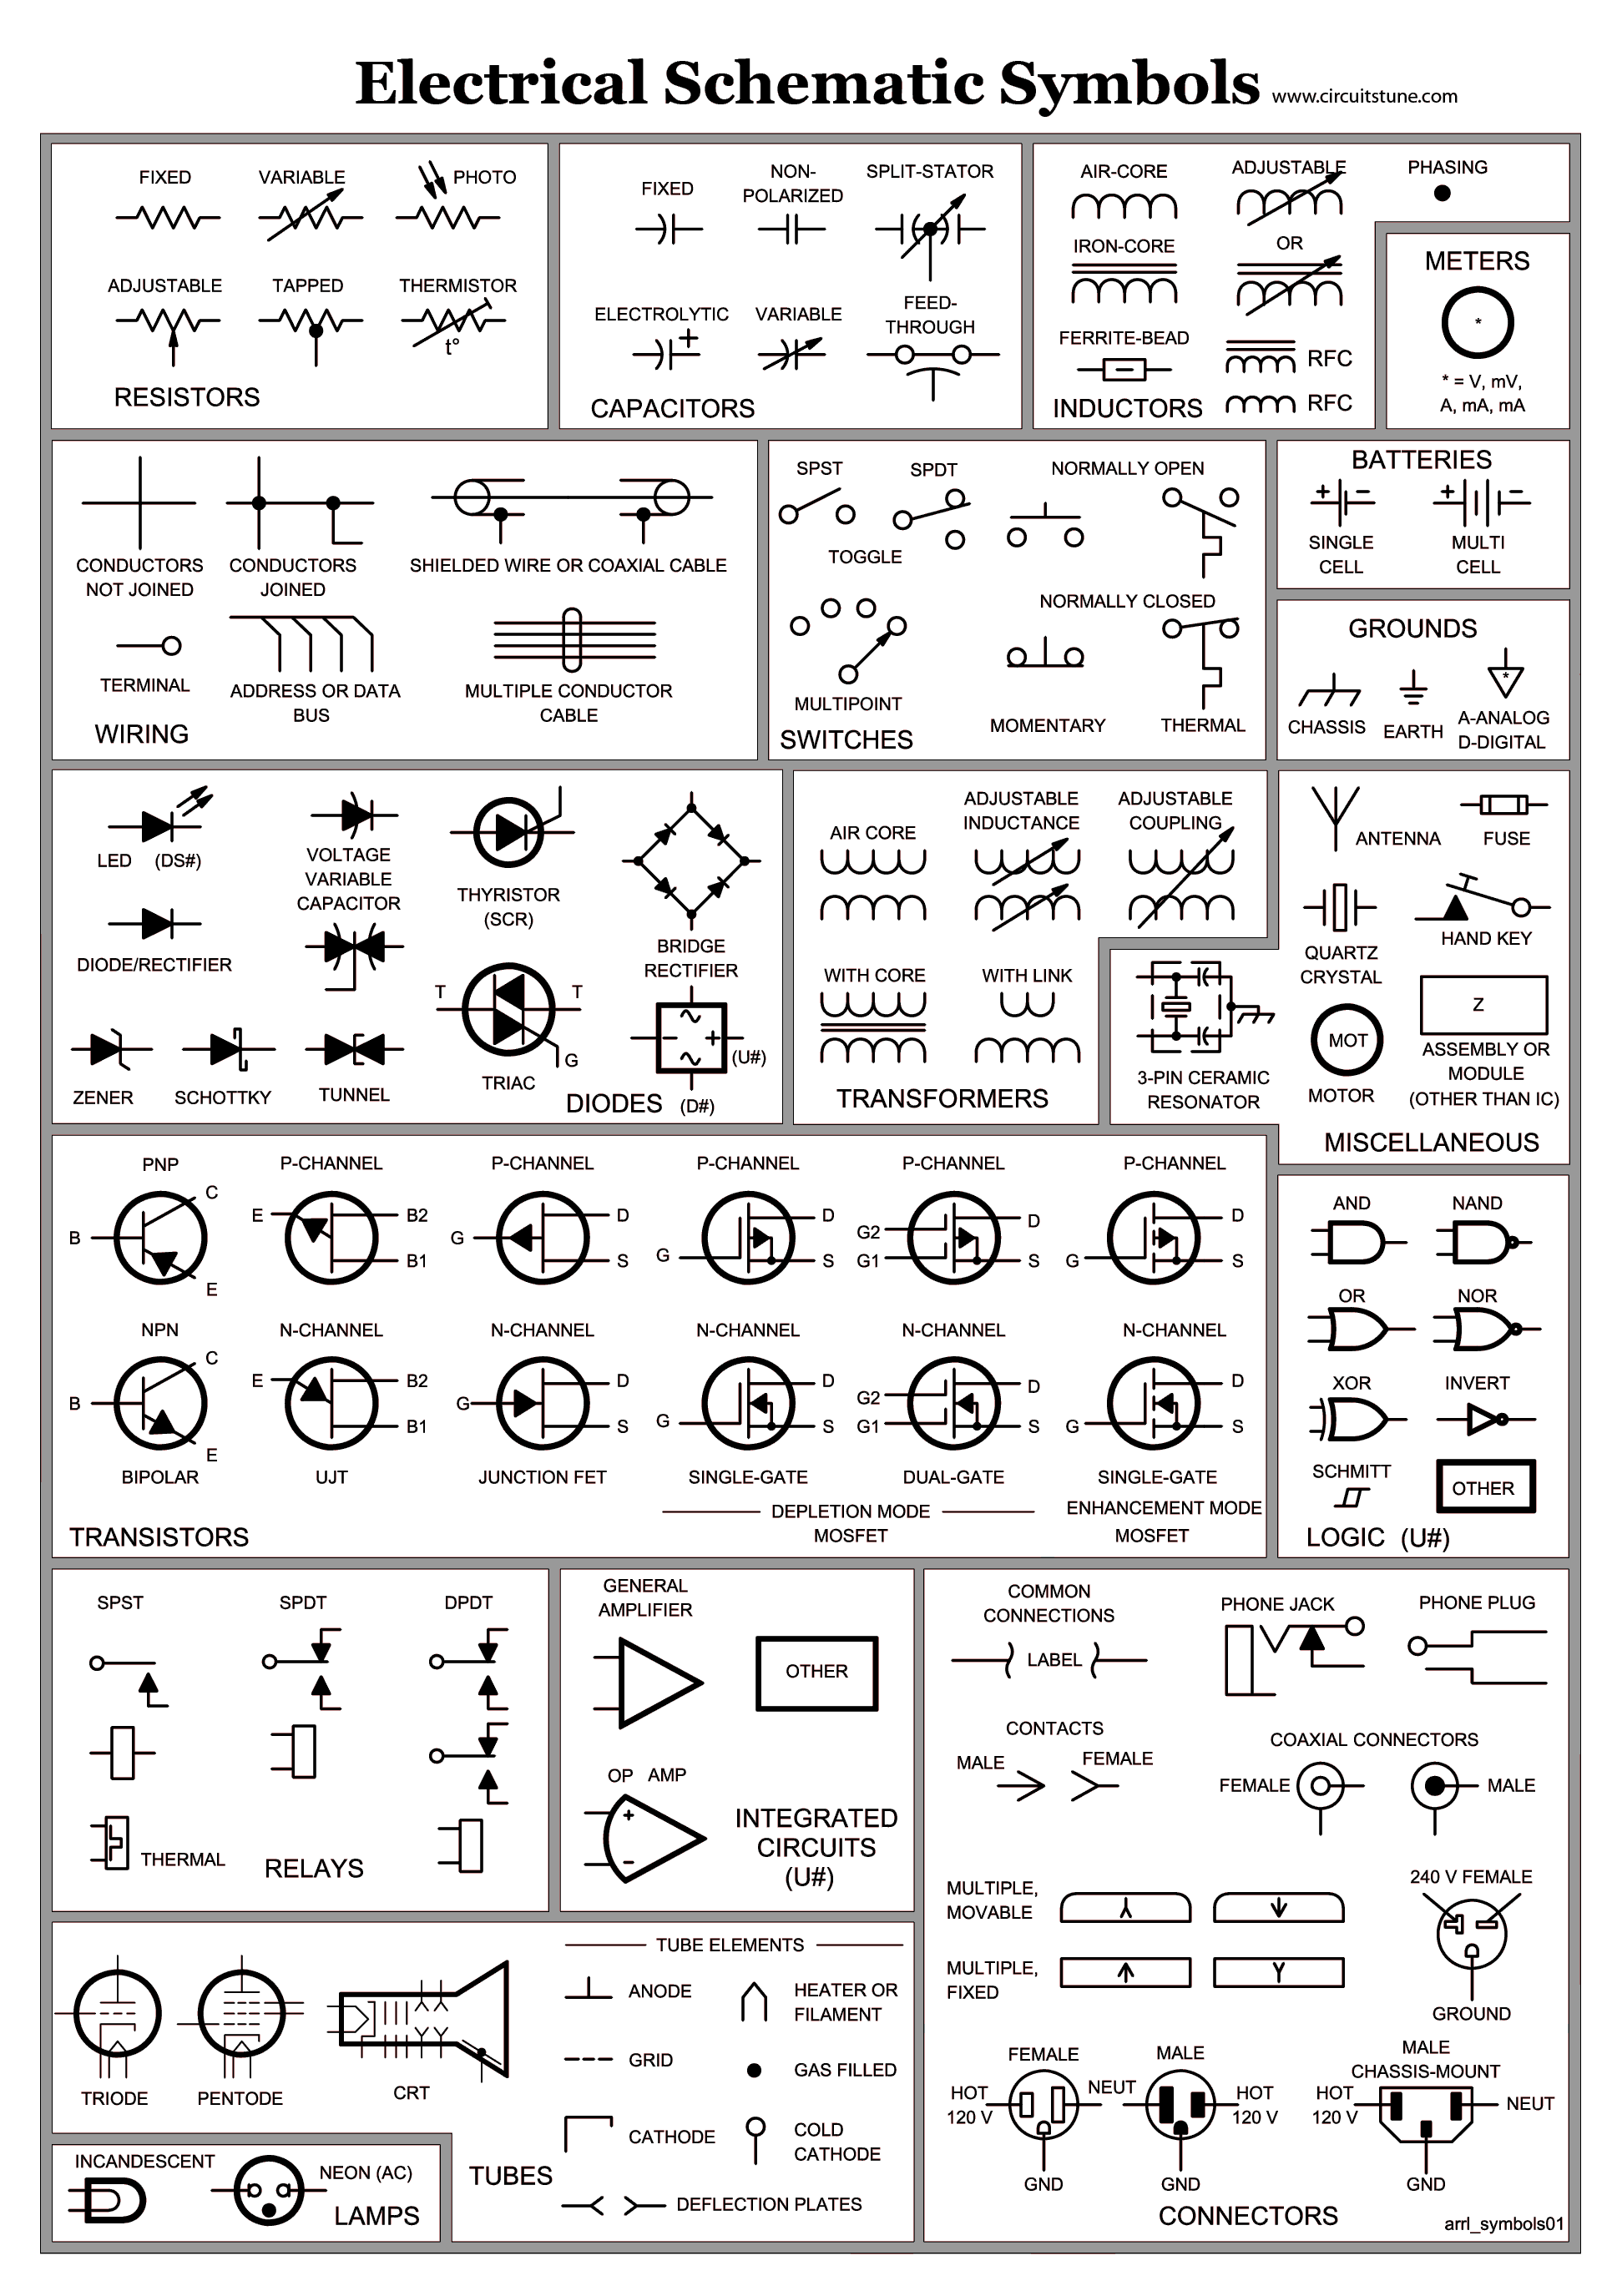 Electrical Schematic Symbols Wire Diagram Symbols Automotive – Power Wiring Diagram